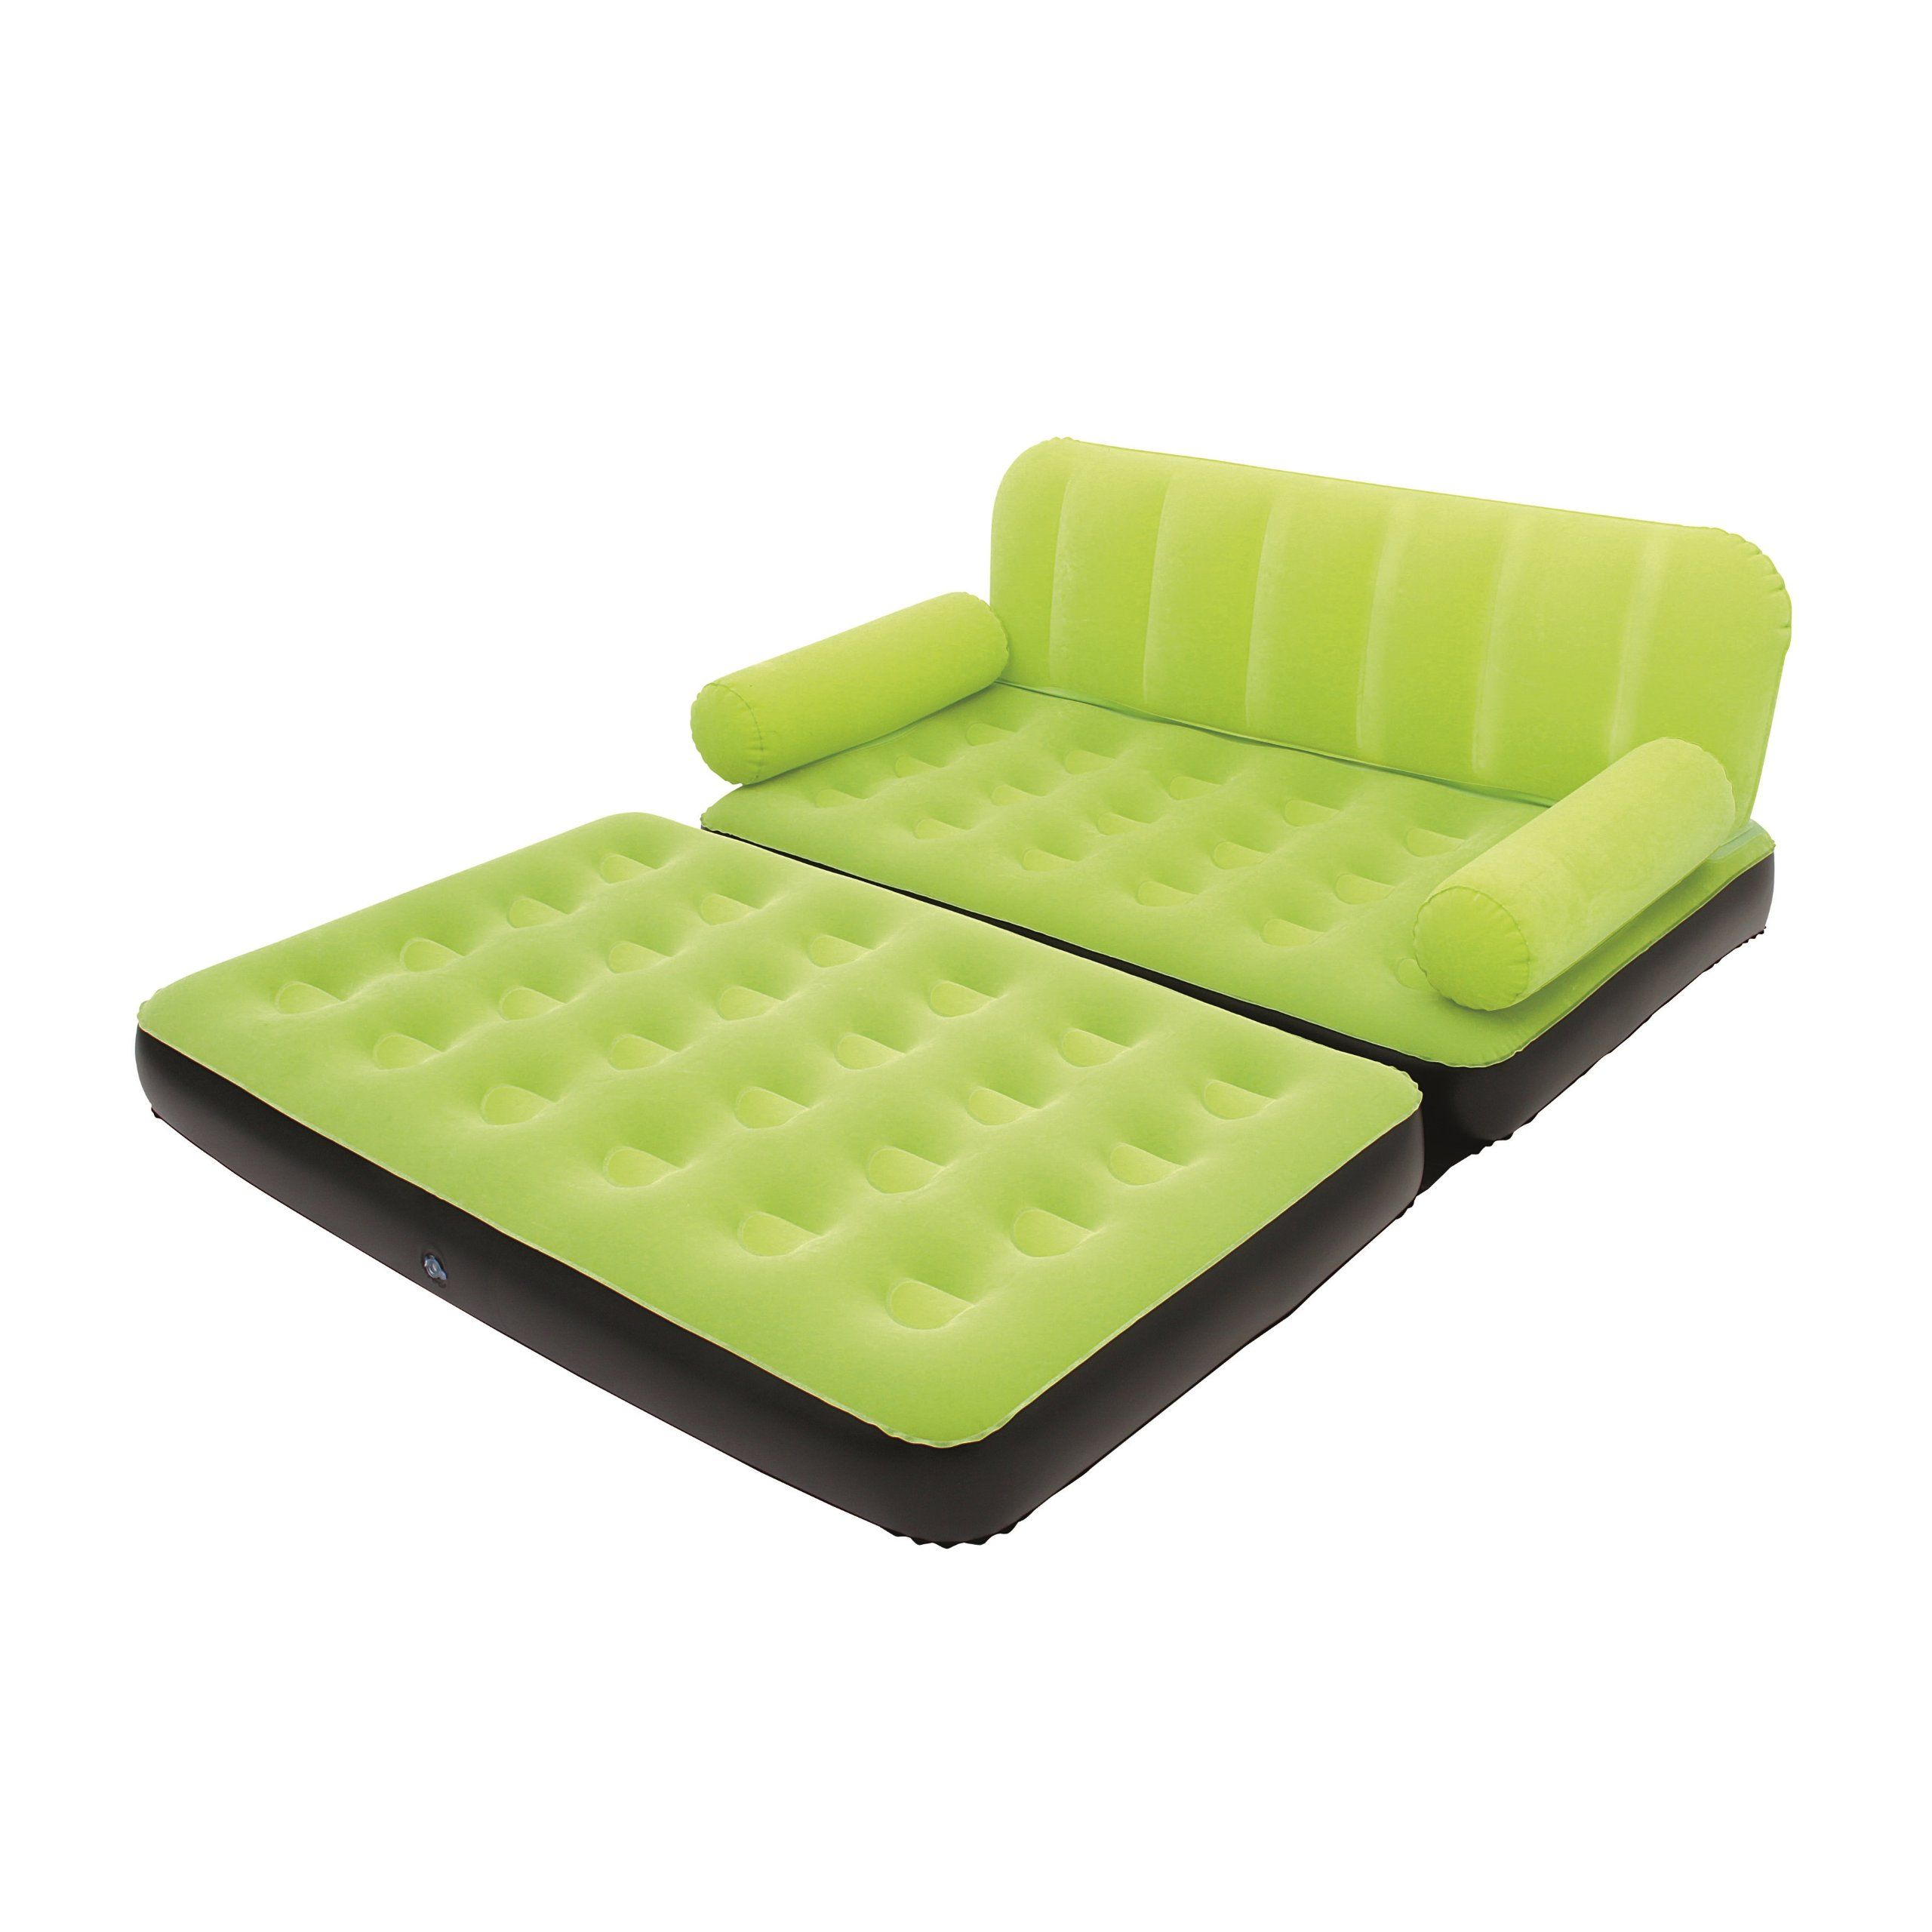 Bestway Multi-Max Inflatable Couch with Air Pump Green  sc 1 st  Pinterest : inflatable sectional couch - Sectionals, Sofas & Couches